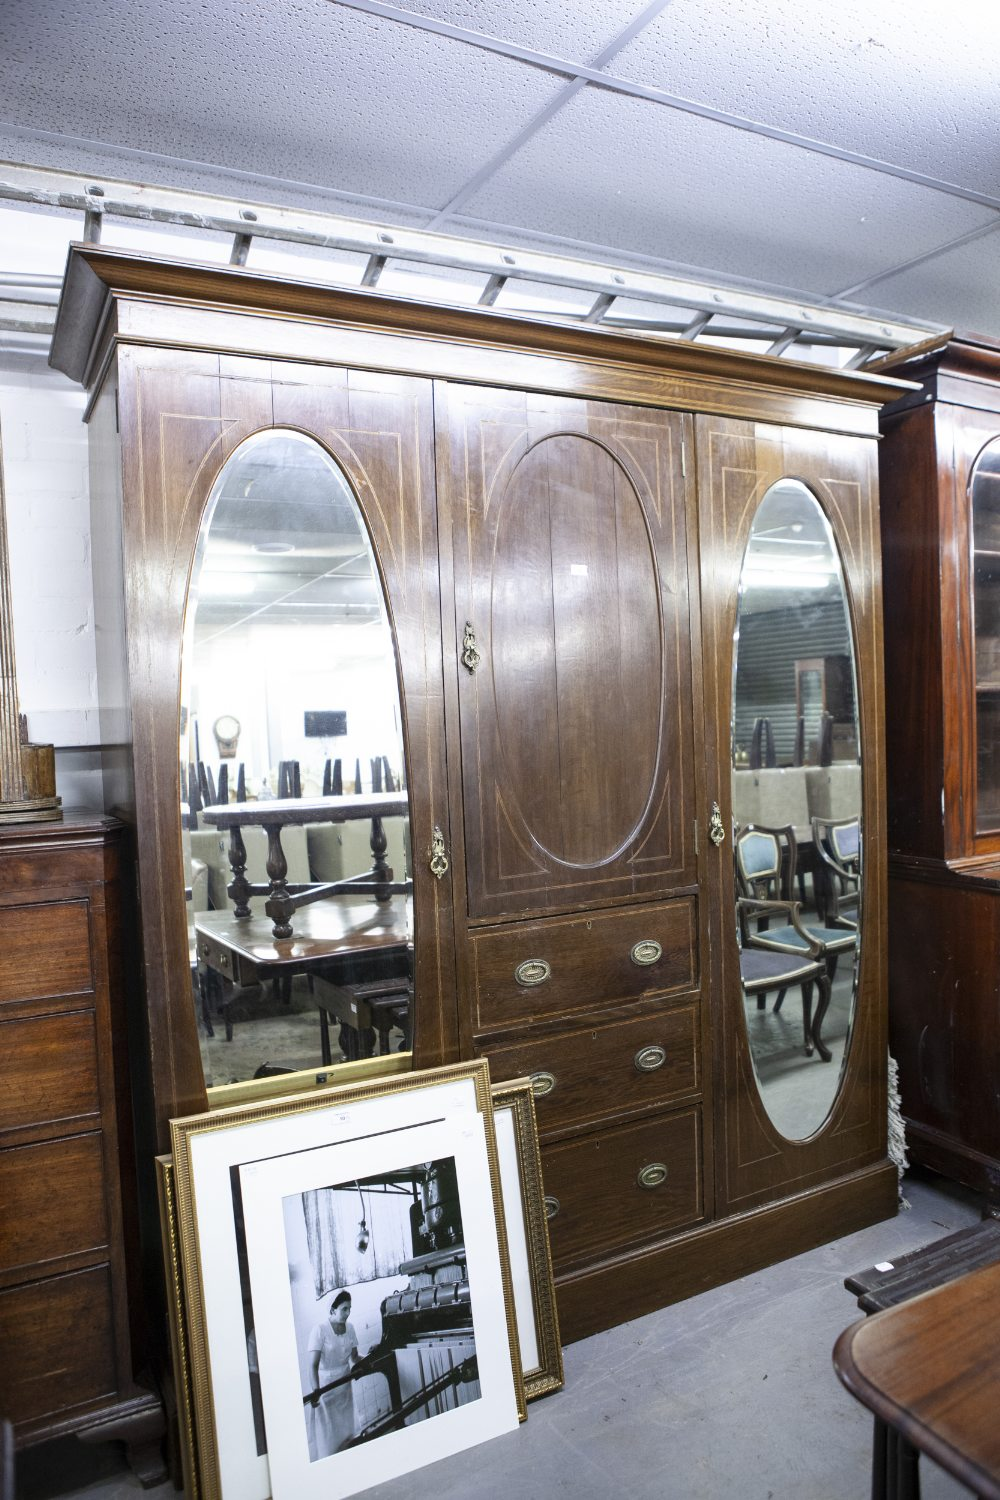 LATE NINETEENTH CENTURY INLAID OAK BEACONSFIELD TYPE WARDROBE WITH TWO OVAL MIRROR PANEL DOORS (A.